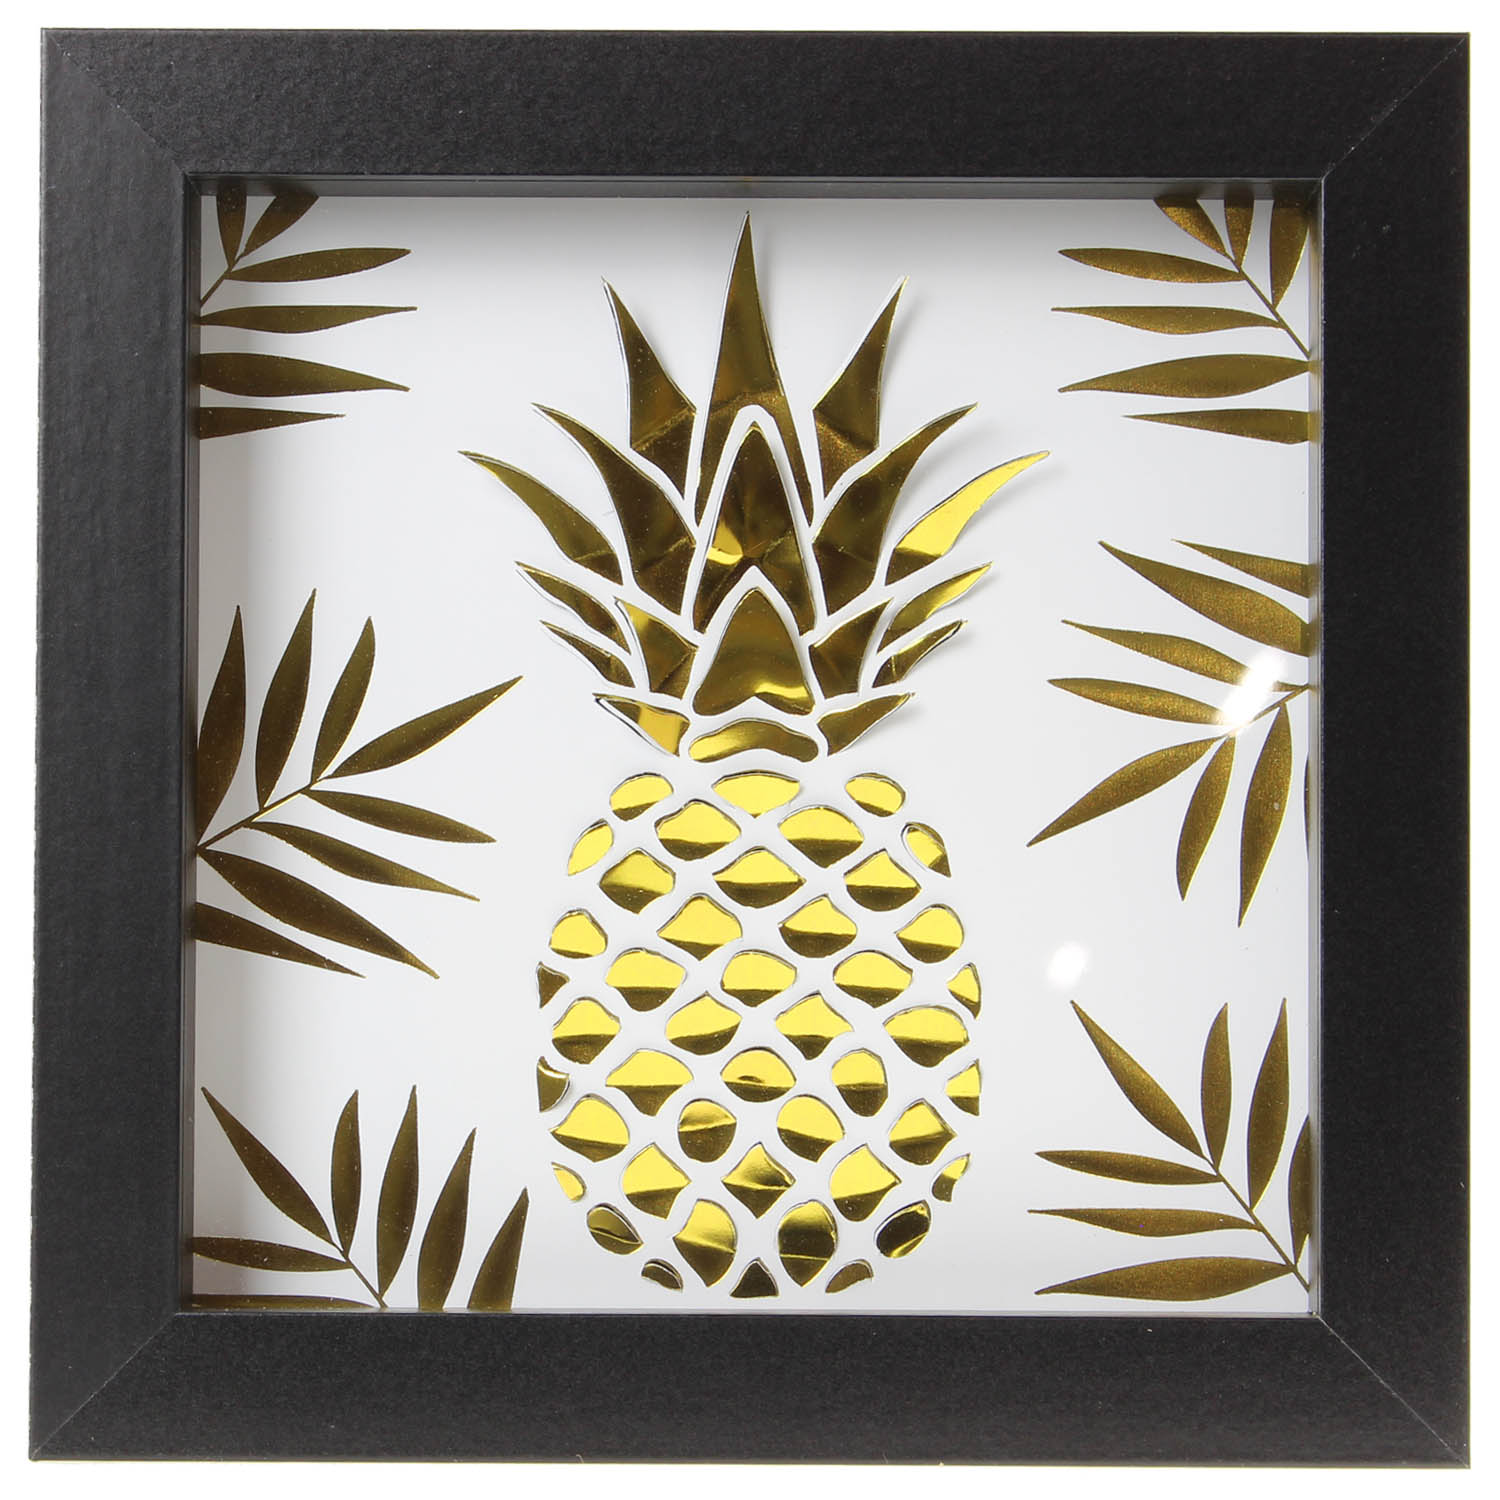 Black box picture frame with Gold Pineapple